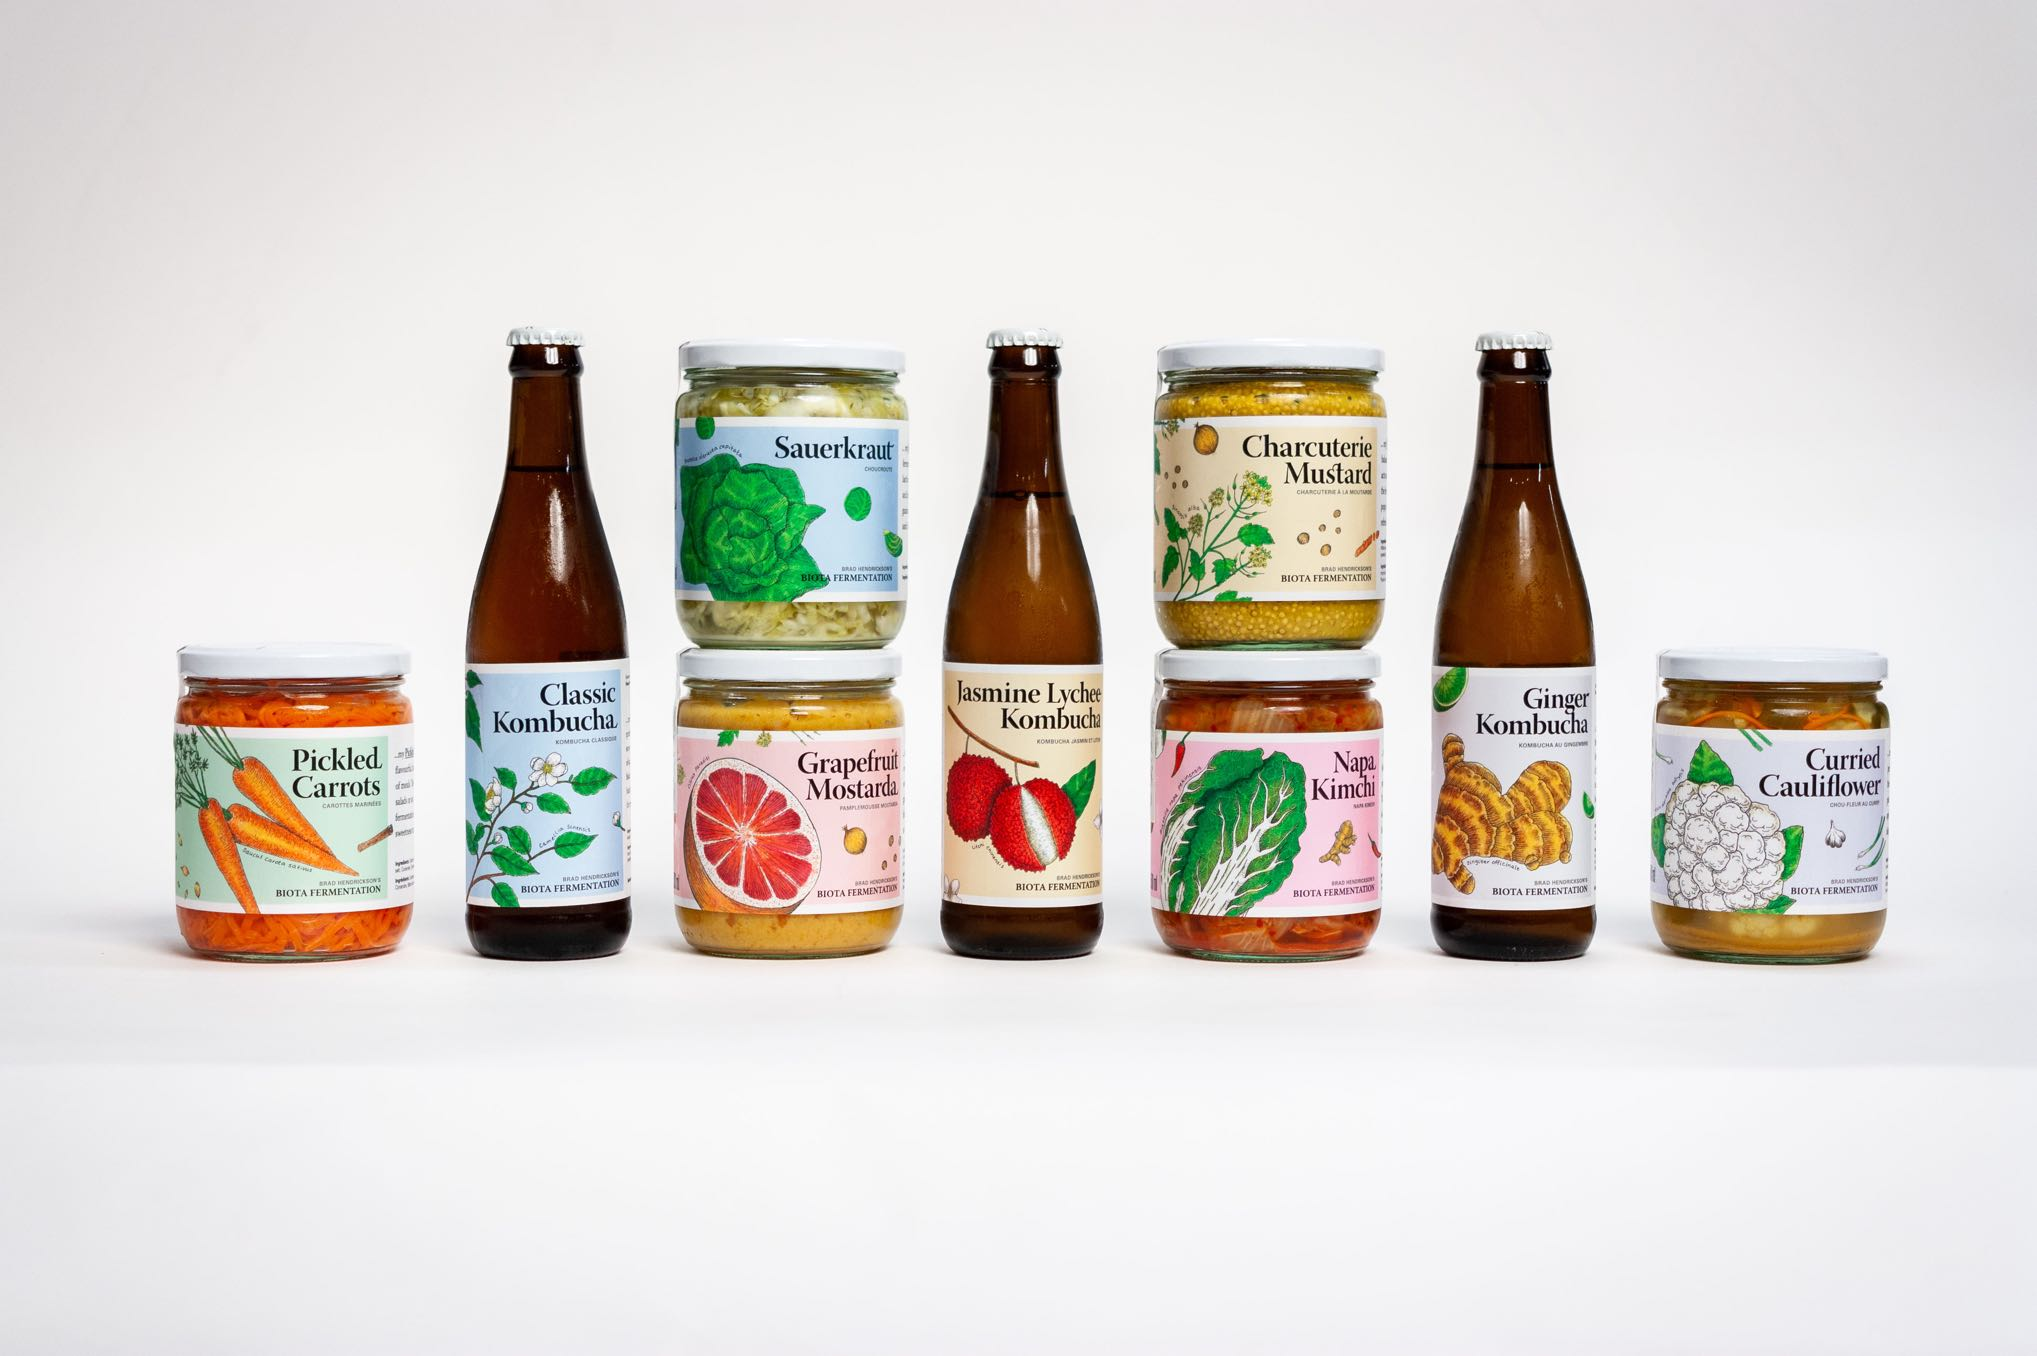 330ml Bottles and 500ml, 250ml Jars of Biota Fermentation kombucha, and various preserves, featuring vibrant, colorful, sharp botanical illustrations of carrots, tea plant, grapefruit, mustard plant, cabbage, lychee, ginger and cauliflower by Jessica Fraser — by Dima Yagnyuk.